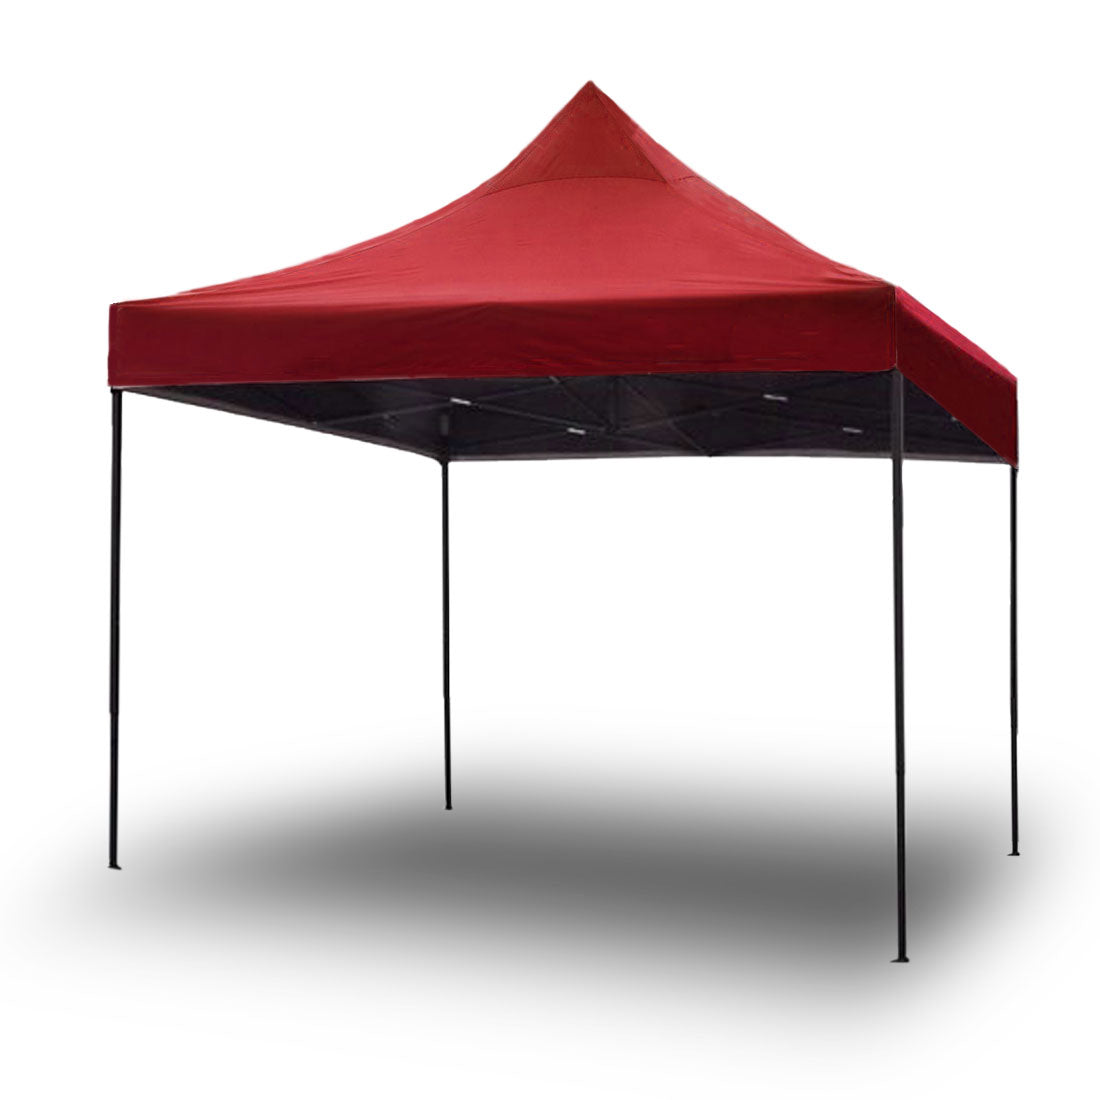 3x3m Pop Up Gazebo Outdoor Tent Folding Marquee Party Camping Market Canopy - red